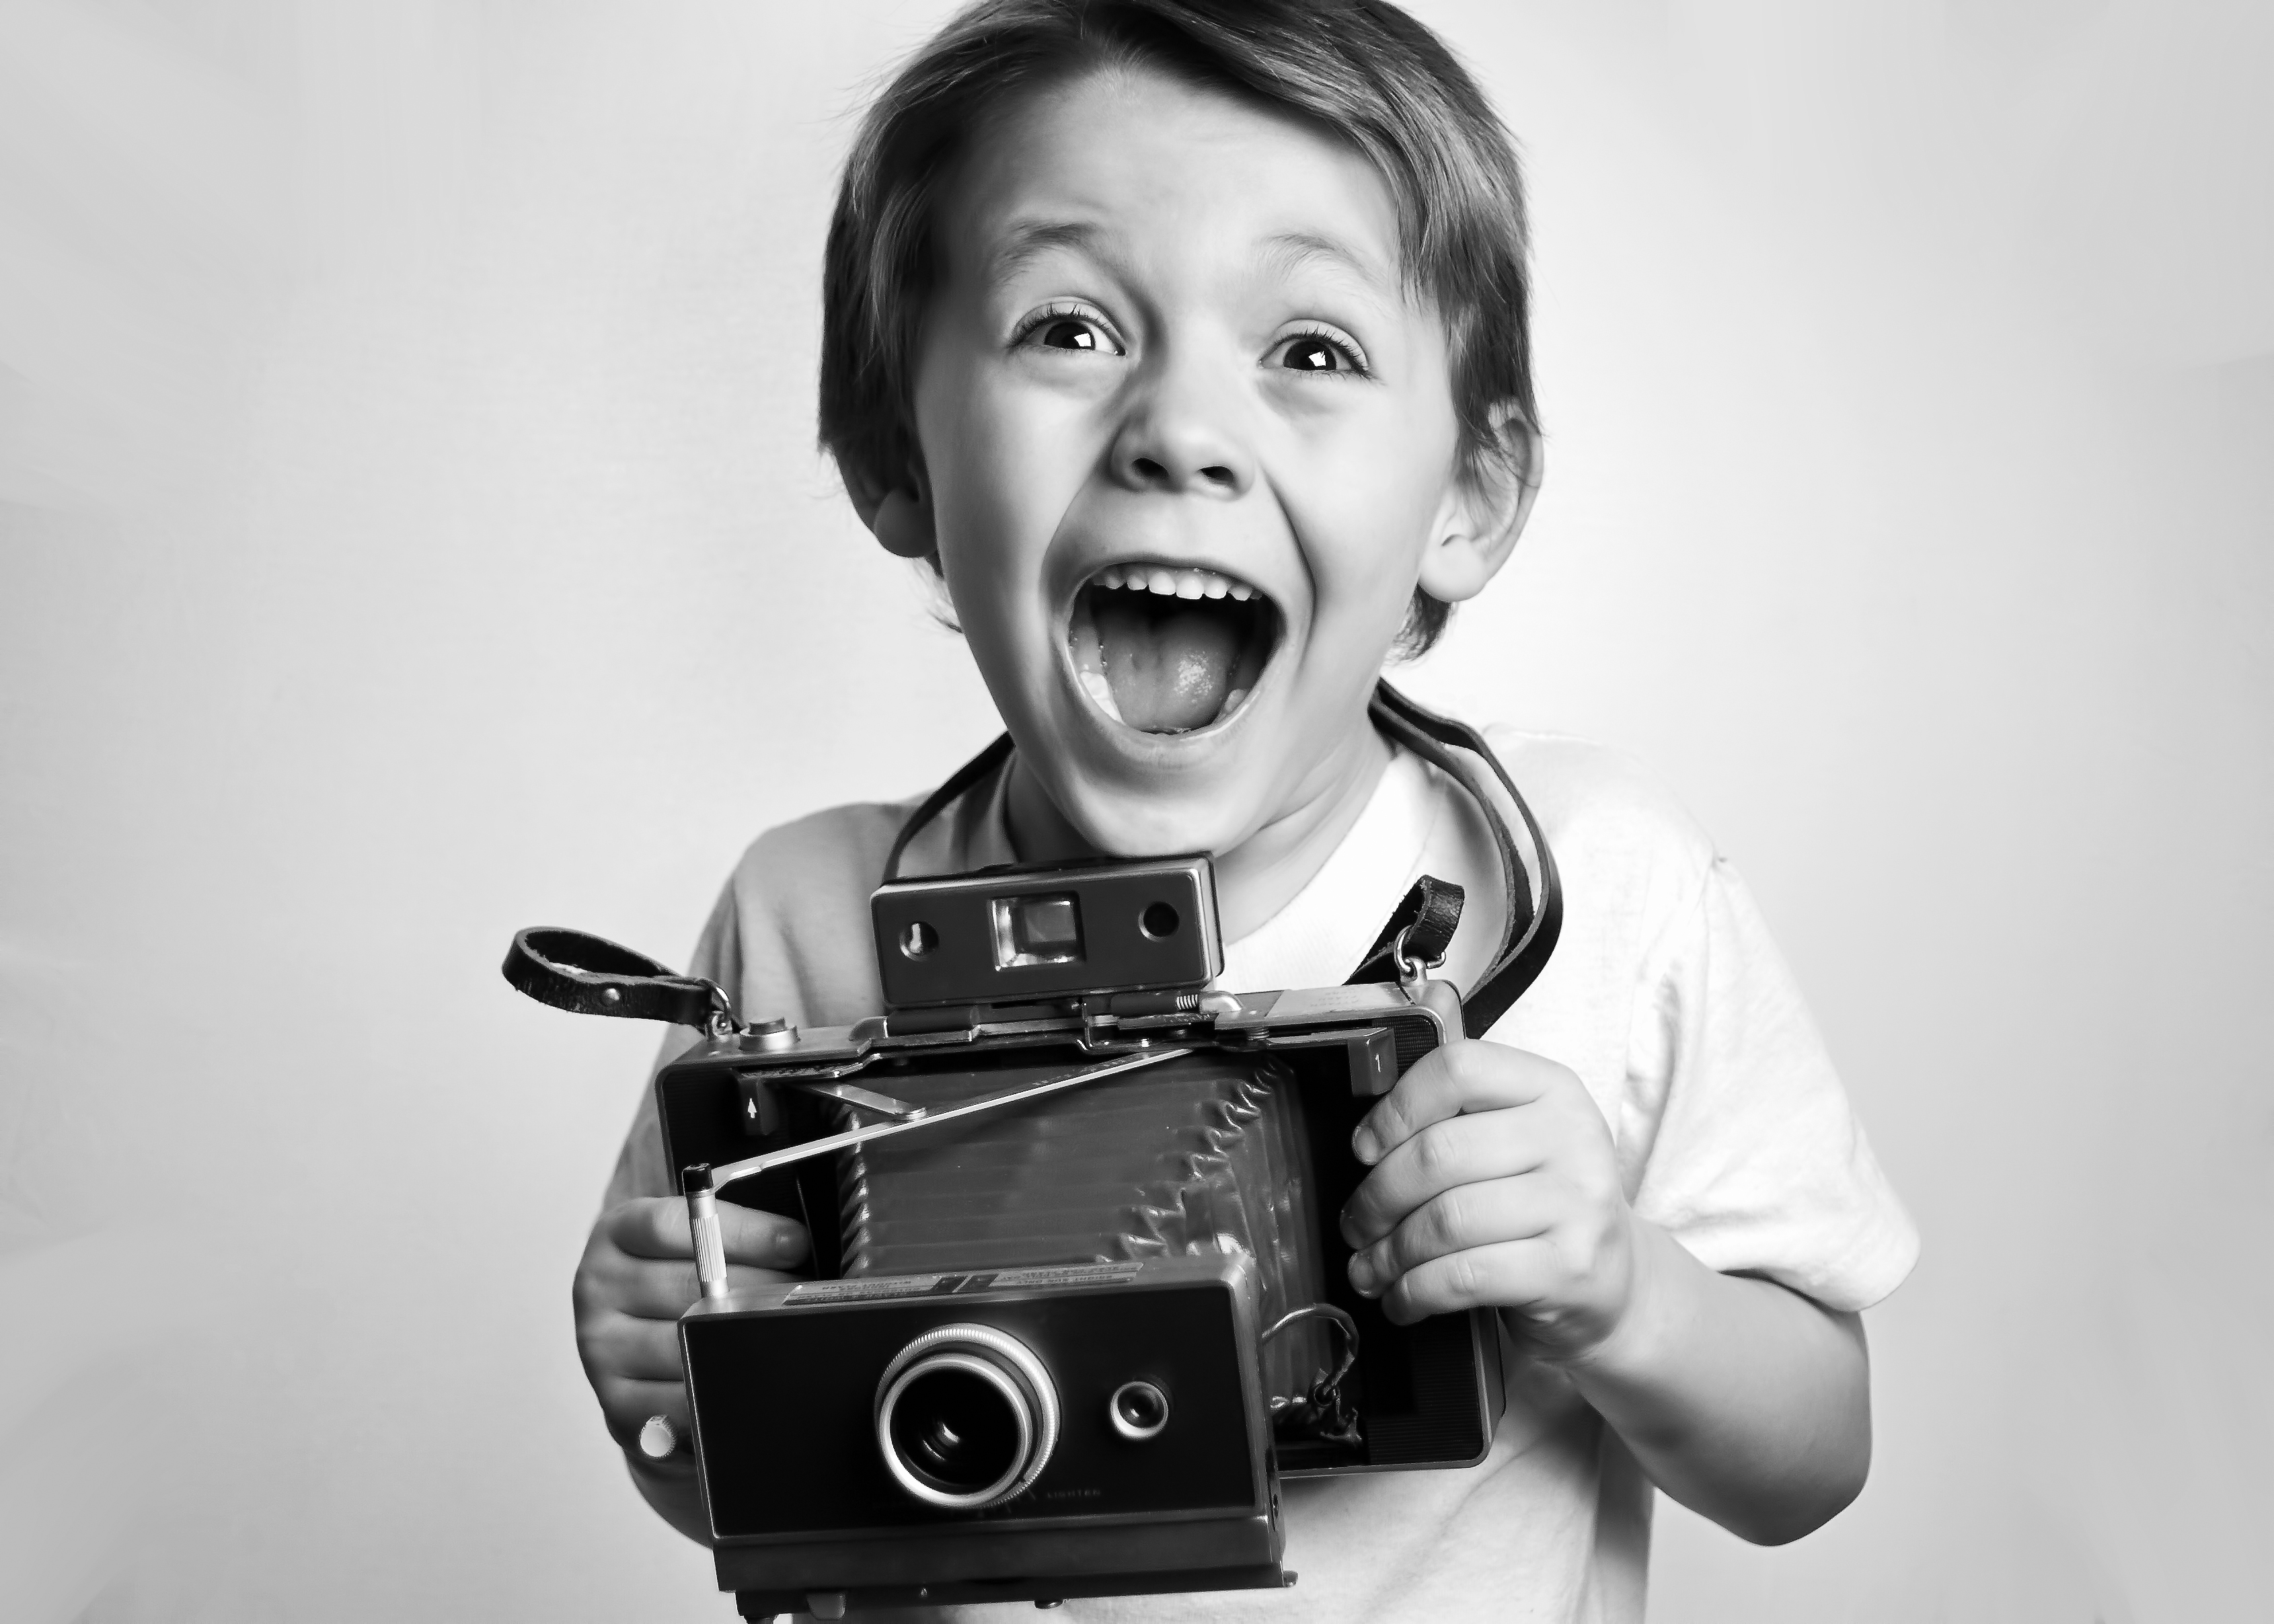 boy camera laughing photography black and white vintage world photo day